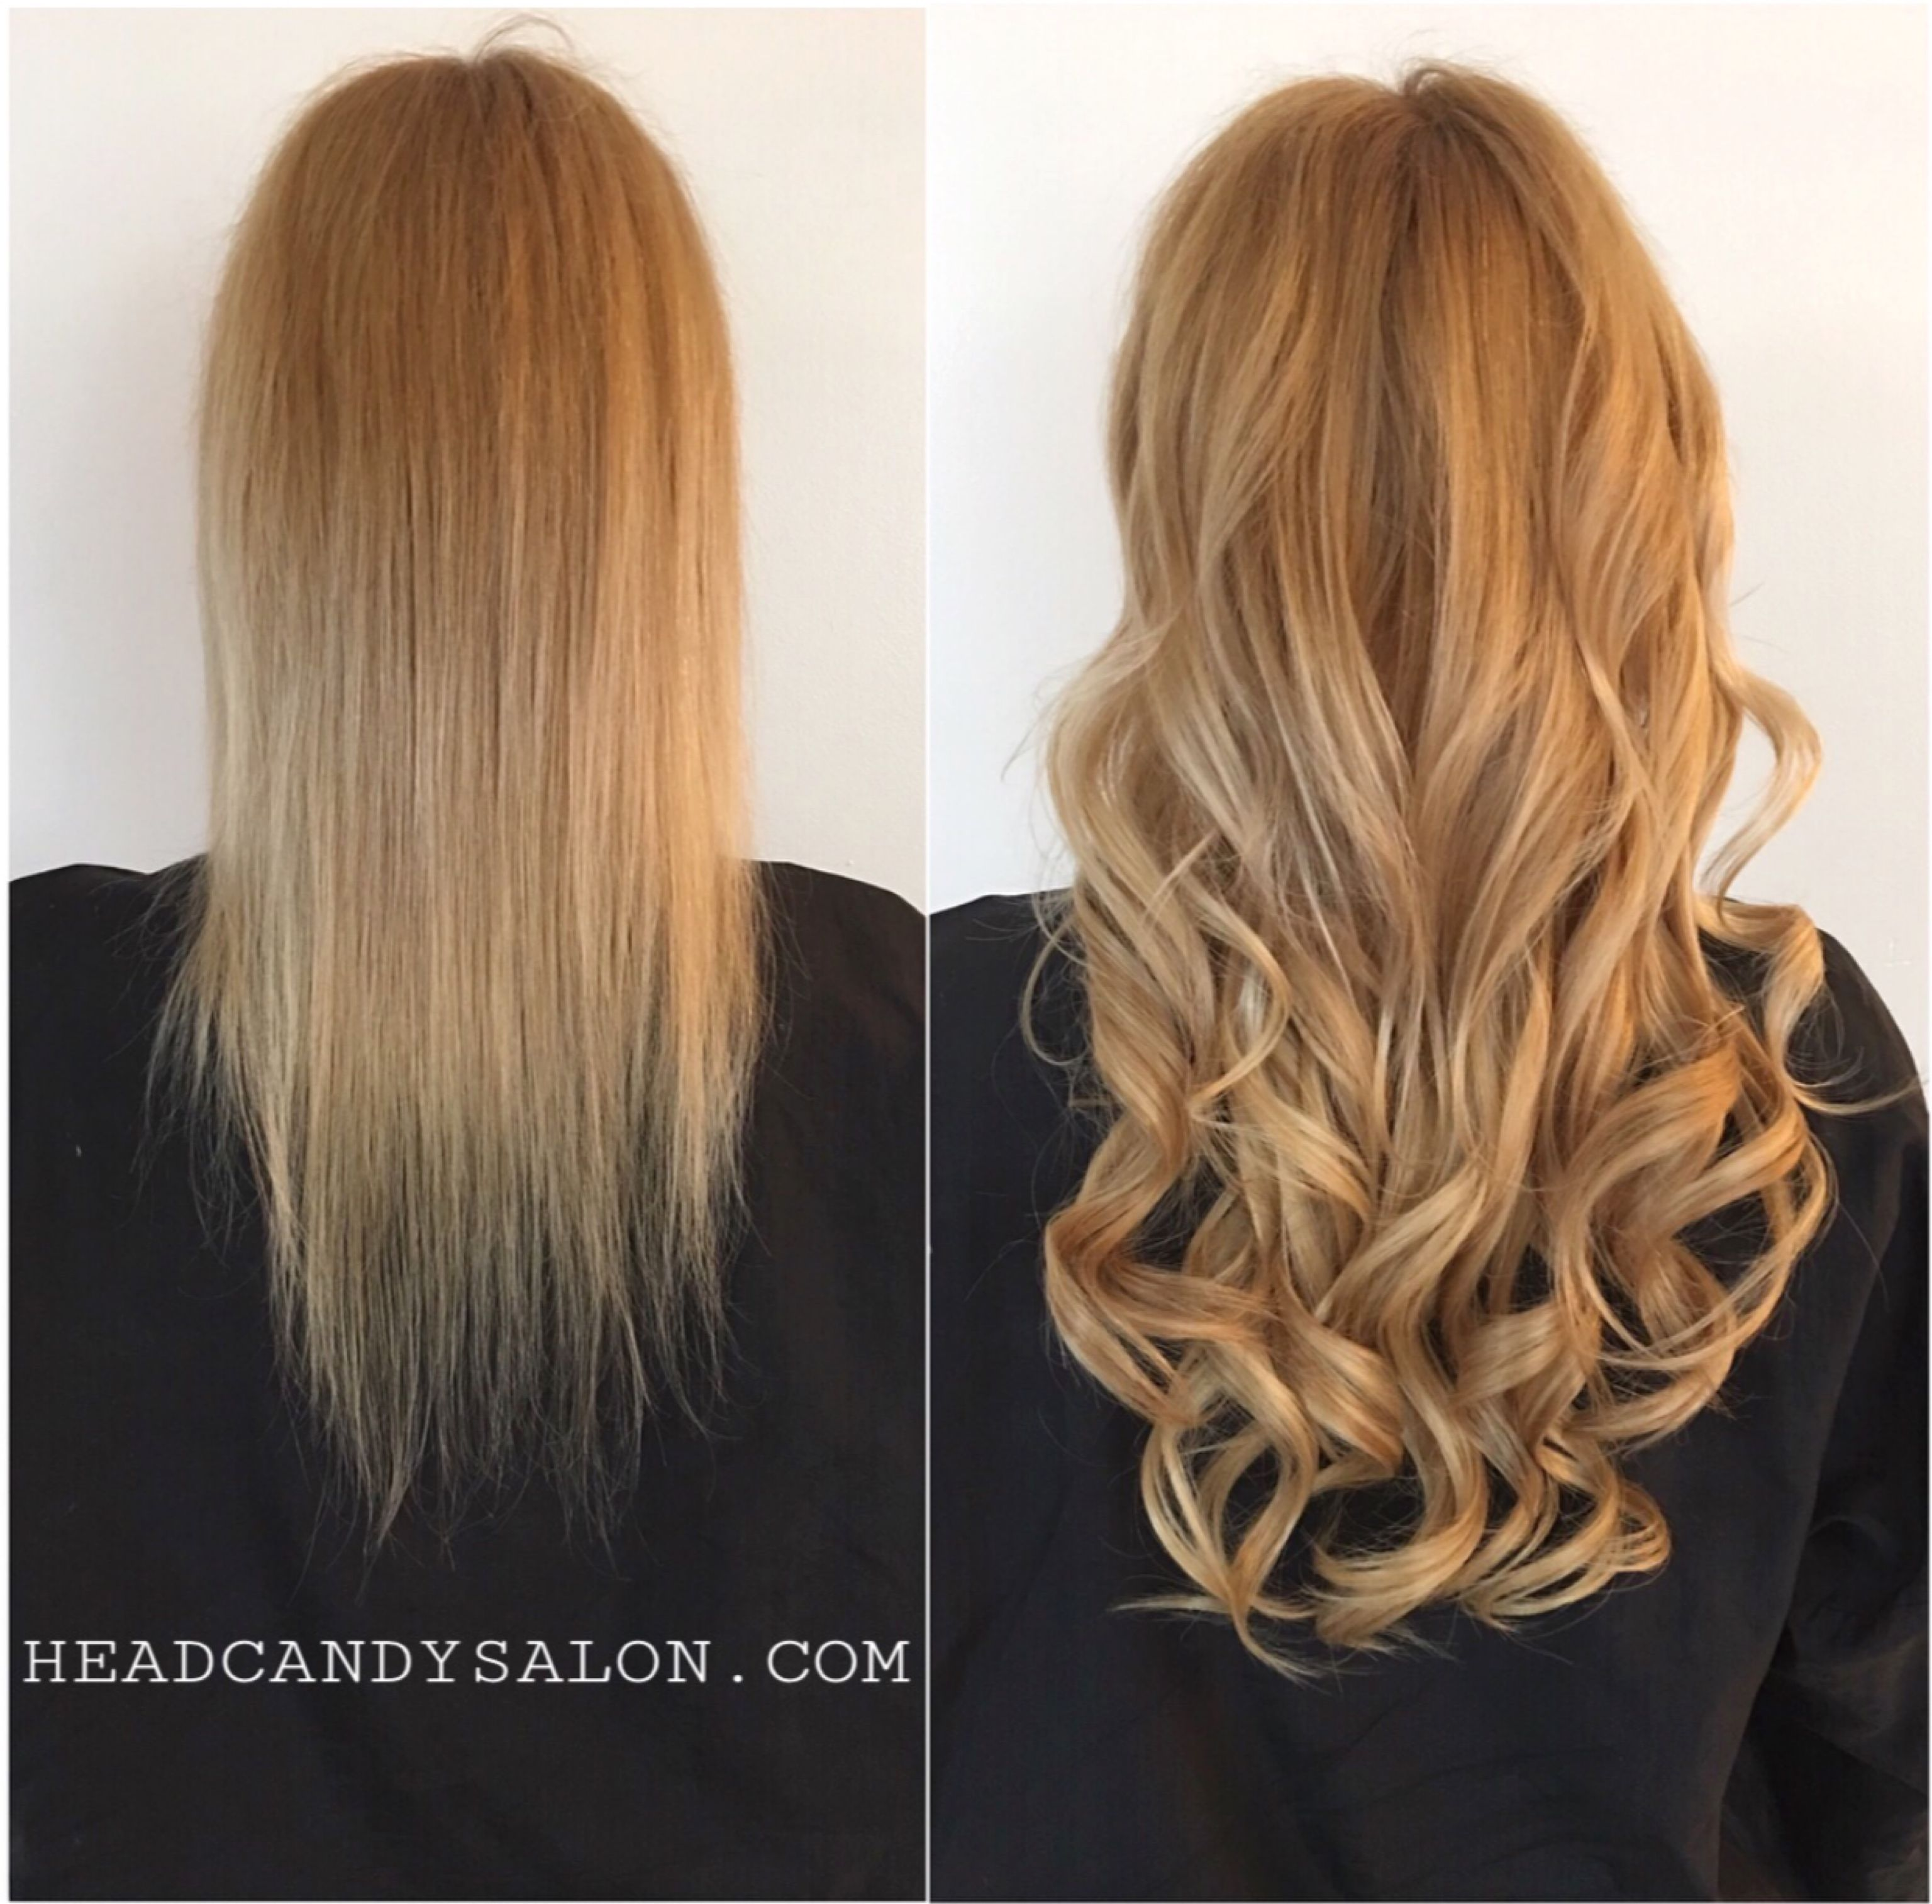 Before After Tape Hair Extensions Beforeandafter Tapehair